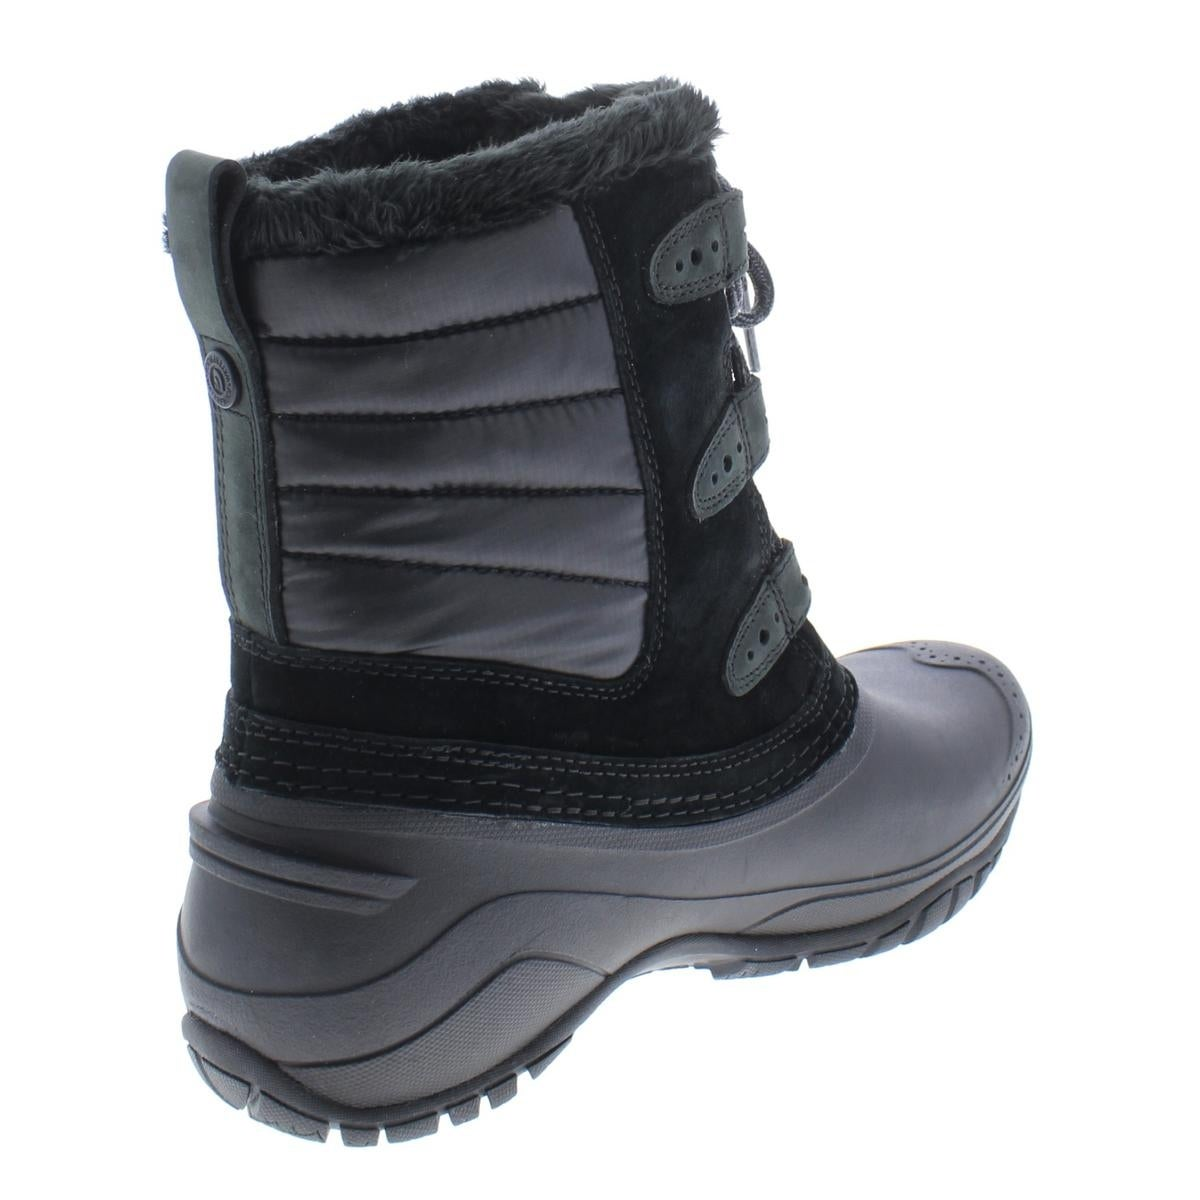 ca42310c9 The North Face Womens Shellista II Shorty Winter Boots Suede Faux Fur Lined